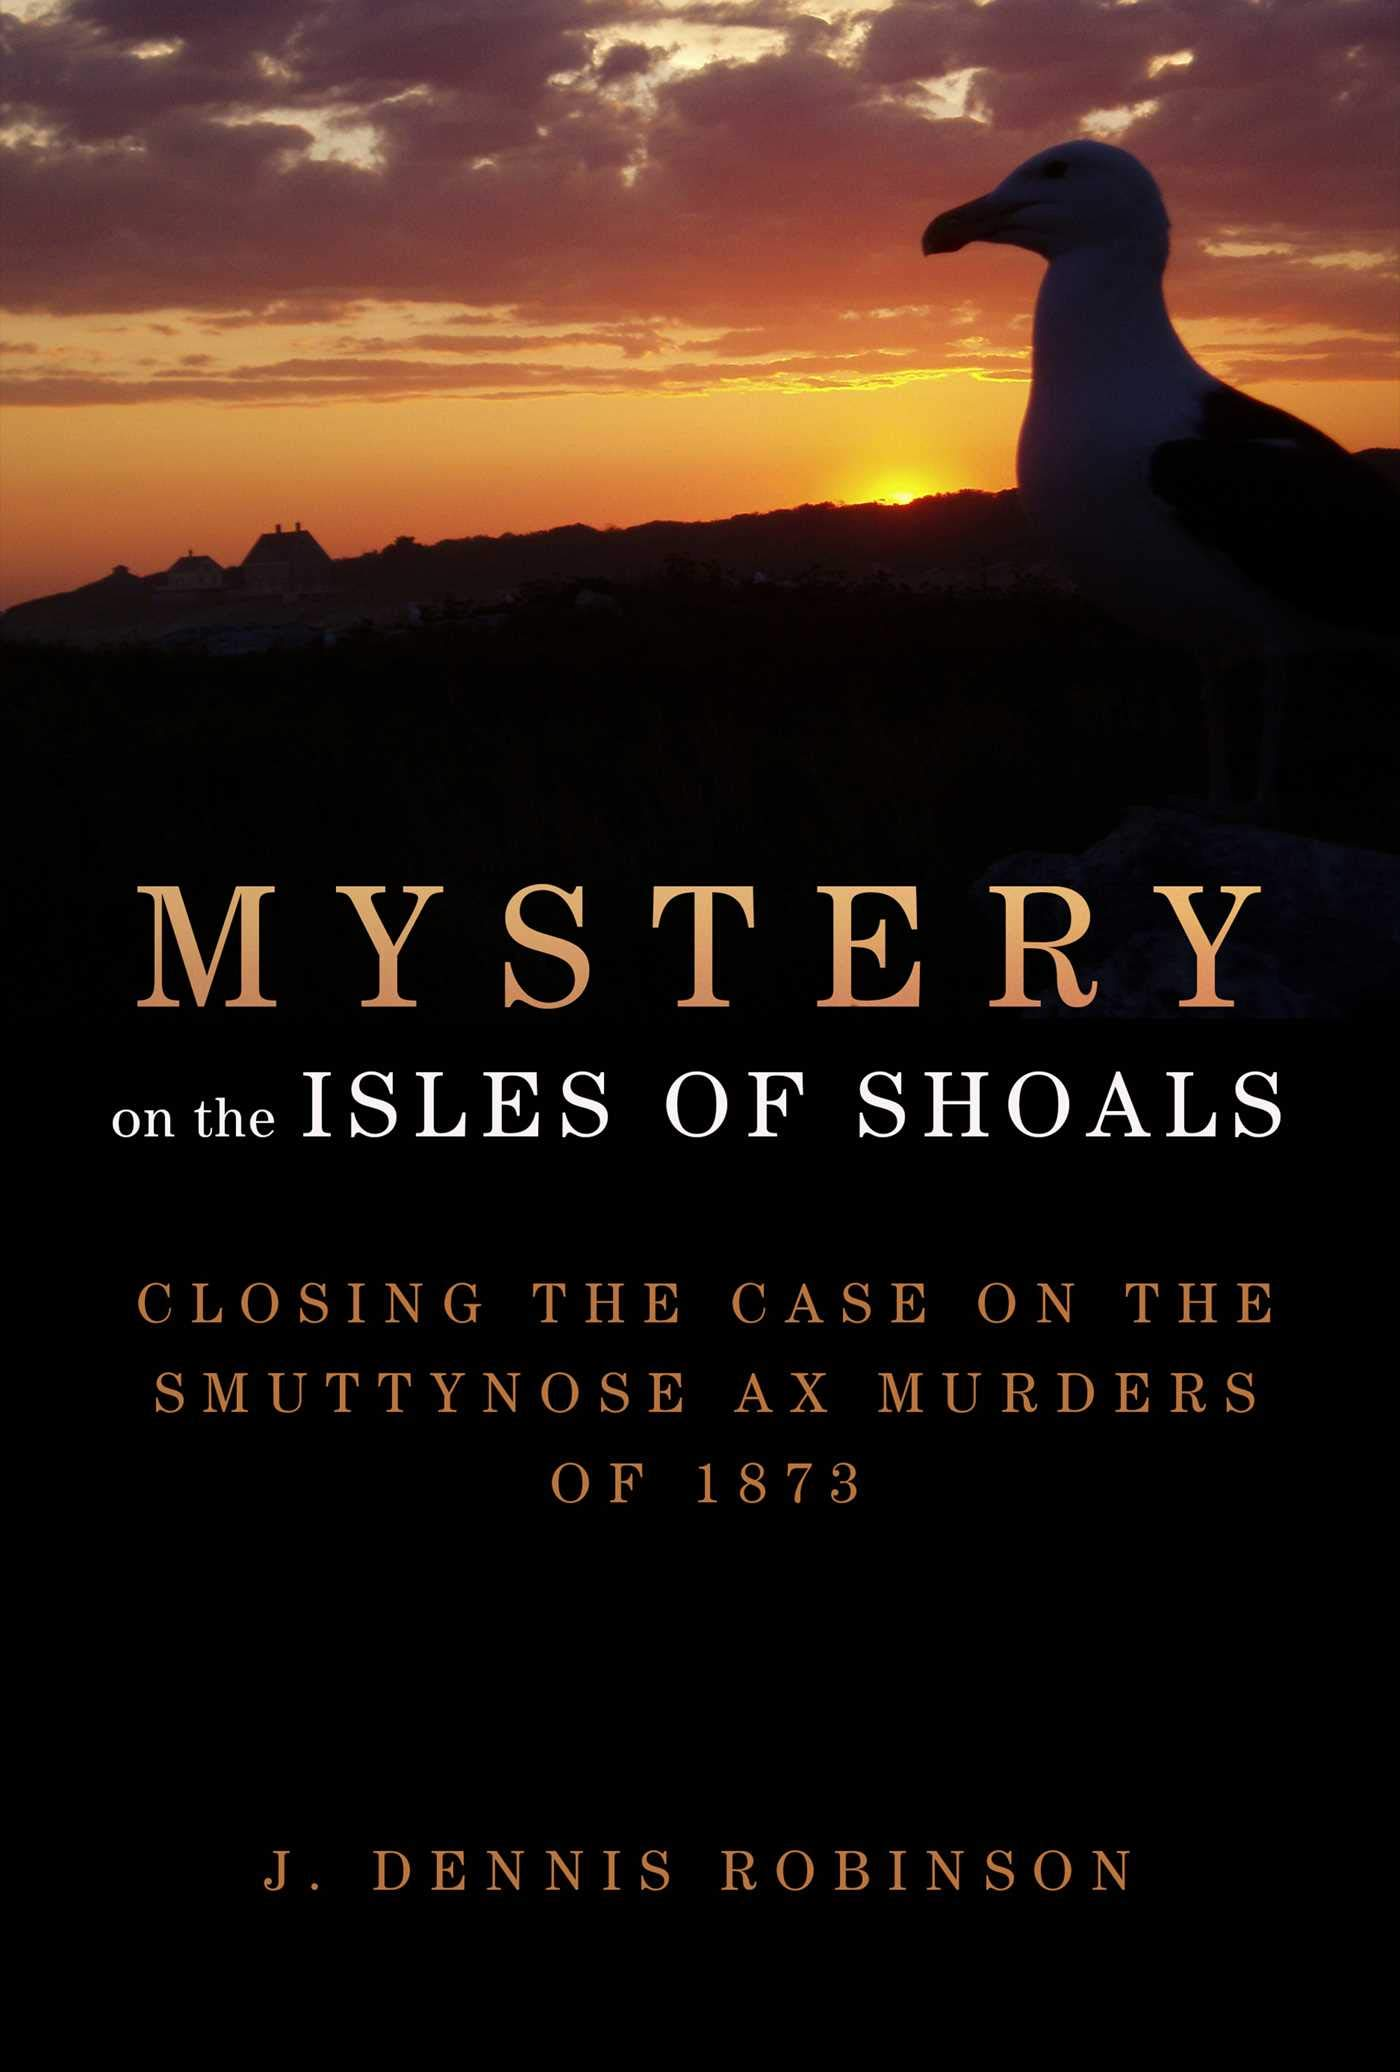 Mystery on the Isles of Shoals: Closing the Case on the Smuttynose Ax Murders of 1873, Robinson, J. Dennis